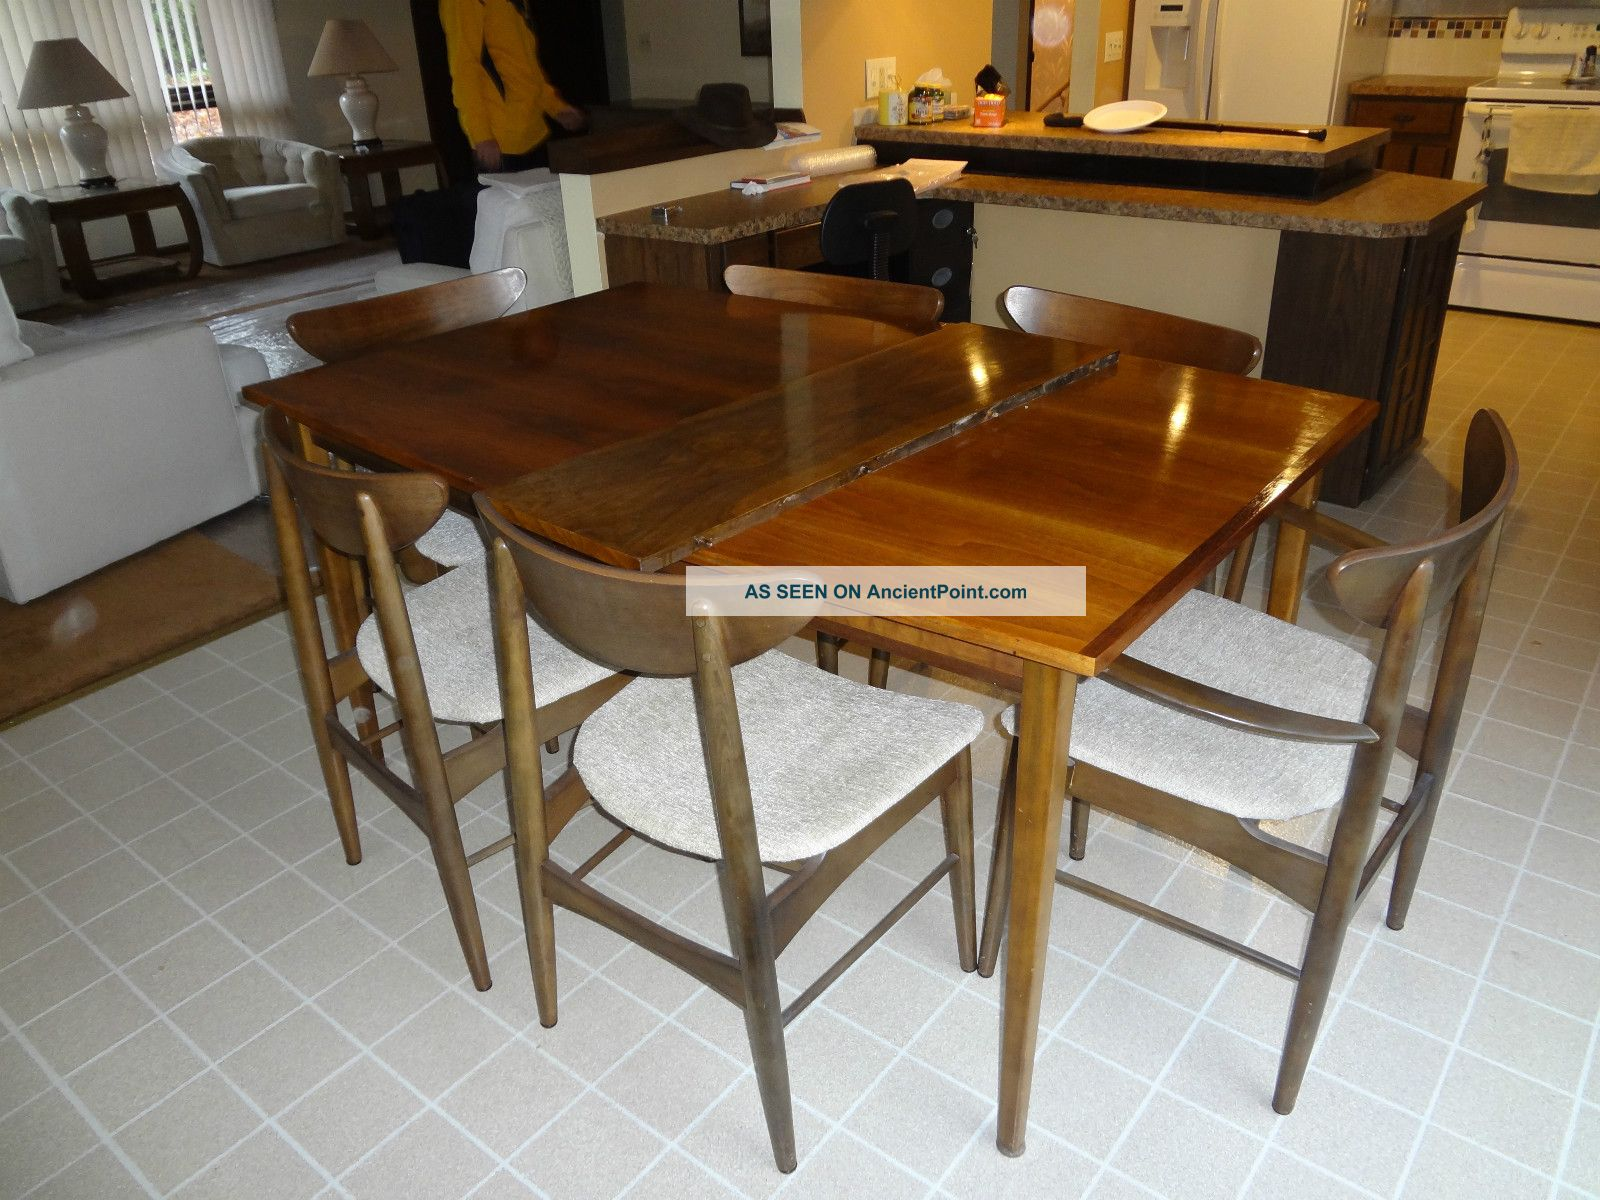 Perfect Mid Century Modern Dining Table and Chairs 1600 x 1200 · 299 kB · jpeg